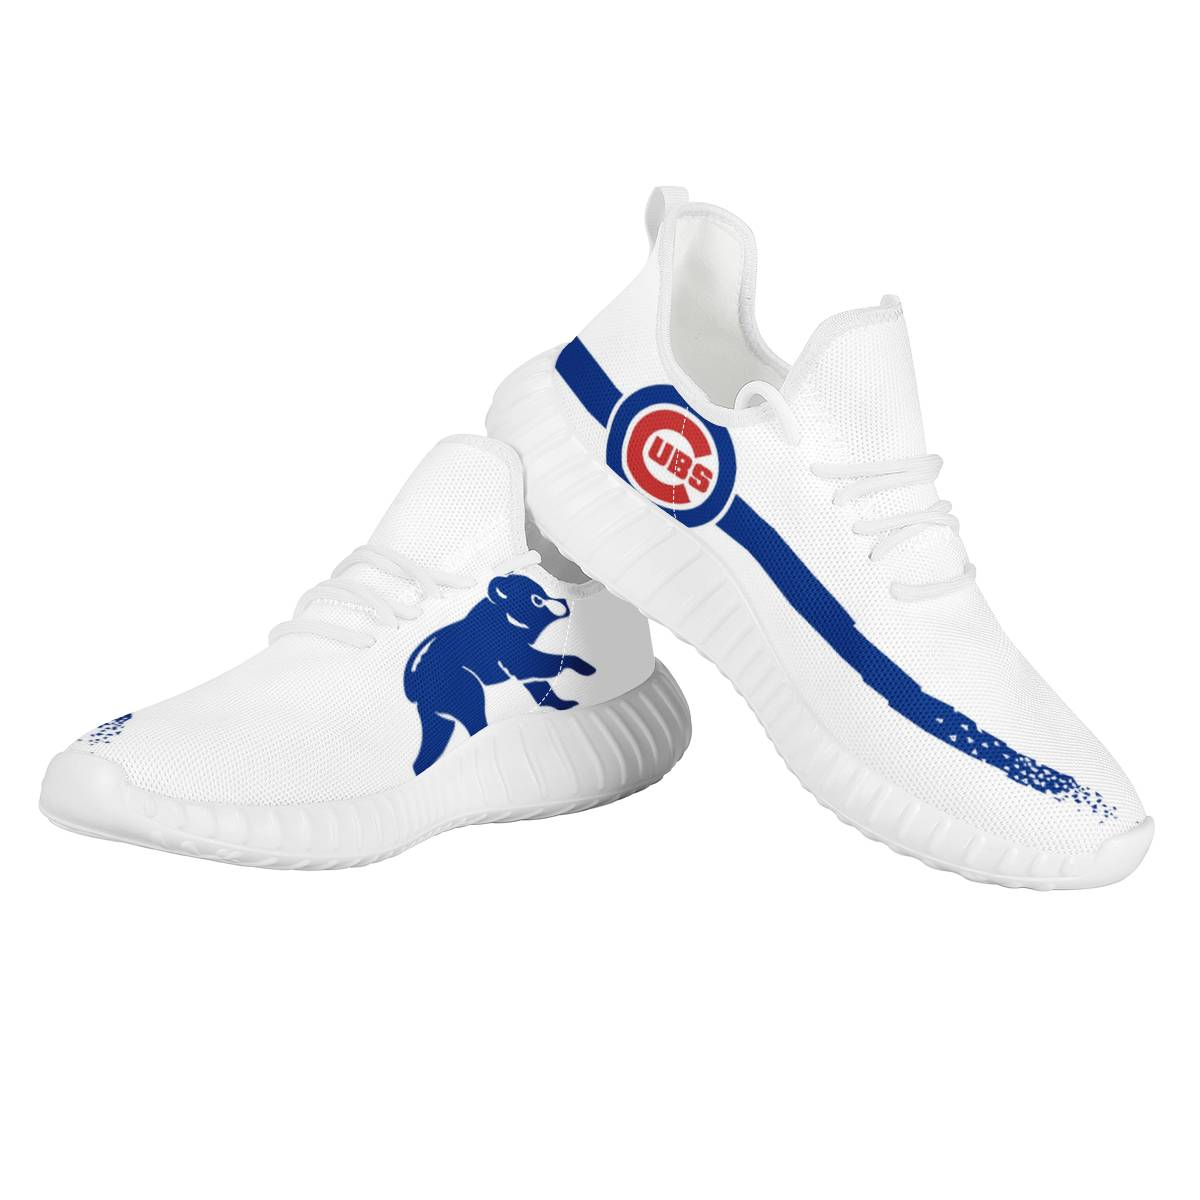 Men's Chicago Cubs Mesh Knit Sneakers/Shoes 008